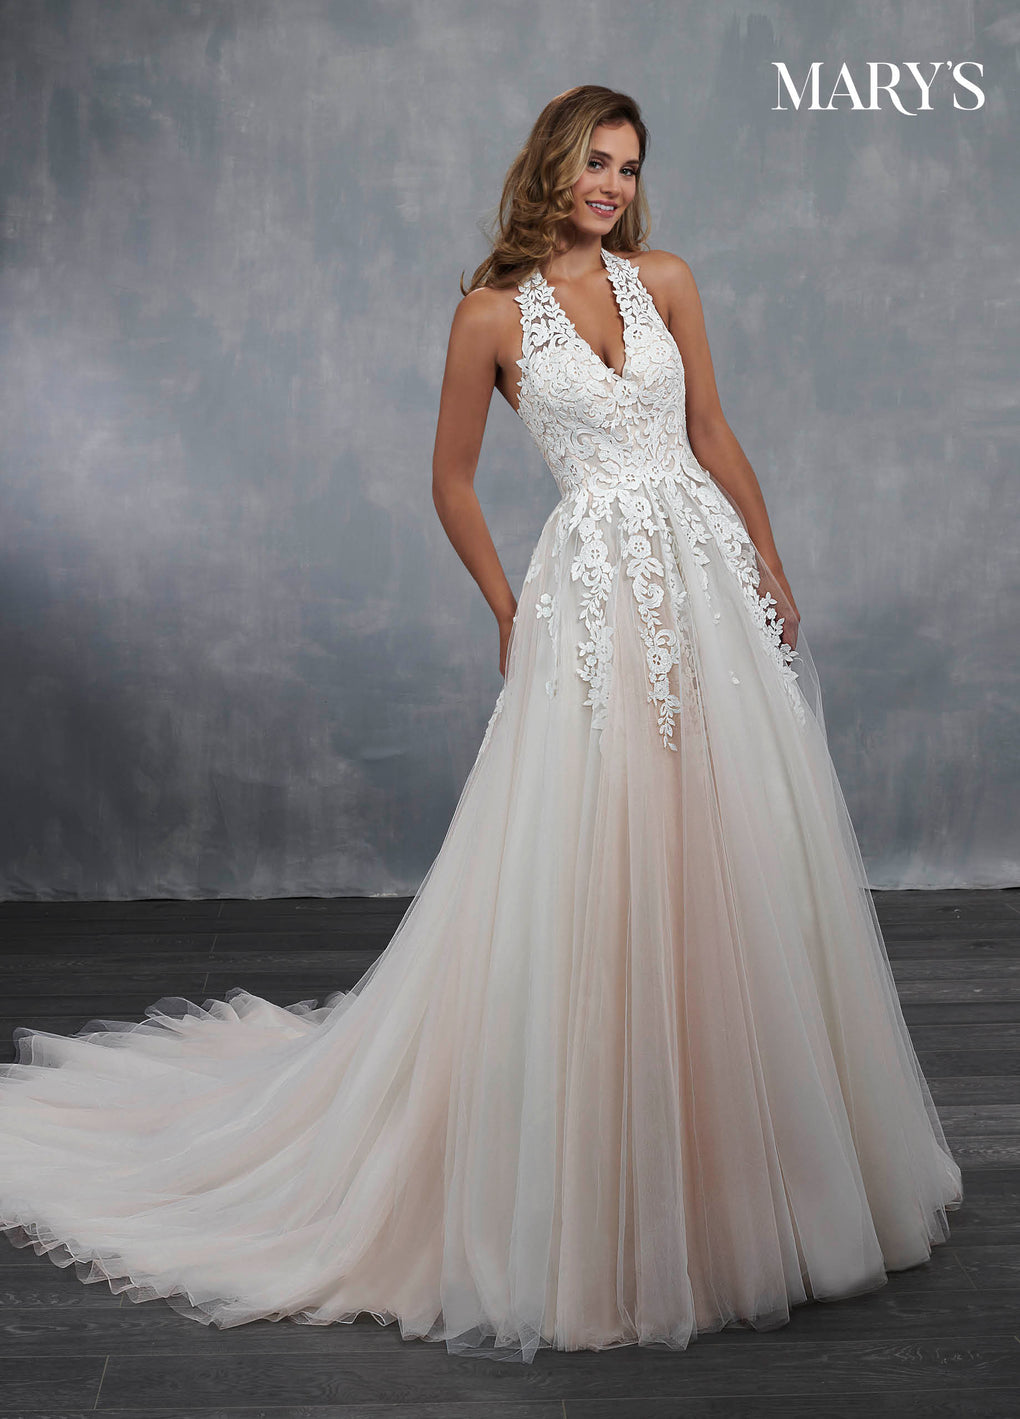 Bridal Wedding Dresses in Ivory/Blush, Ivory, or White Color